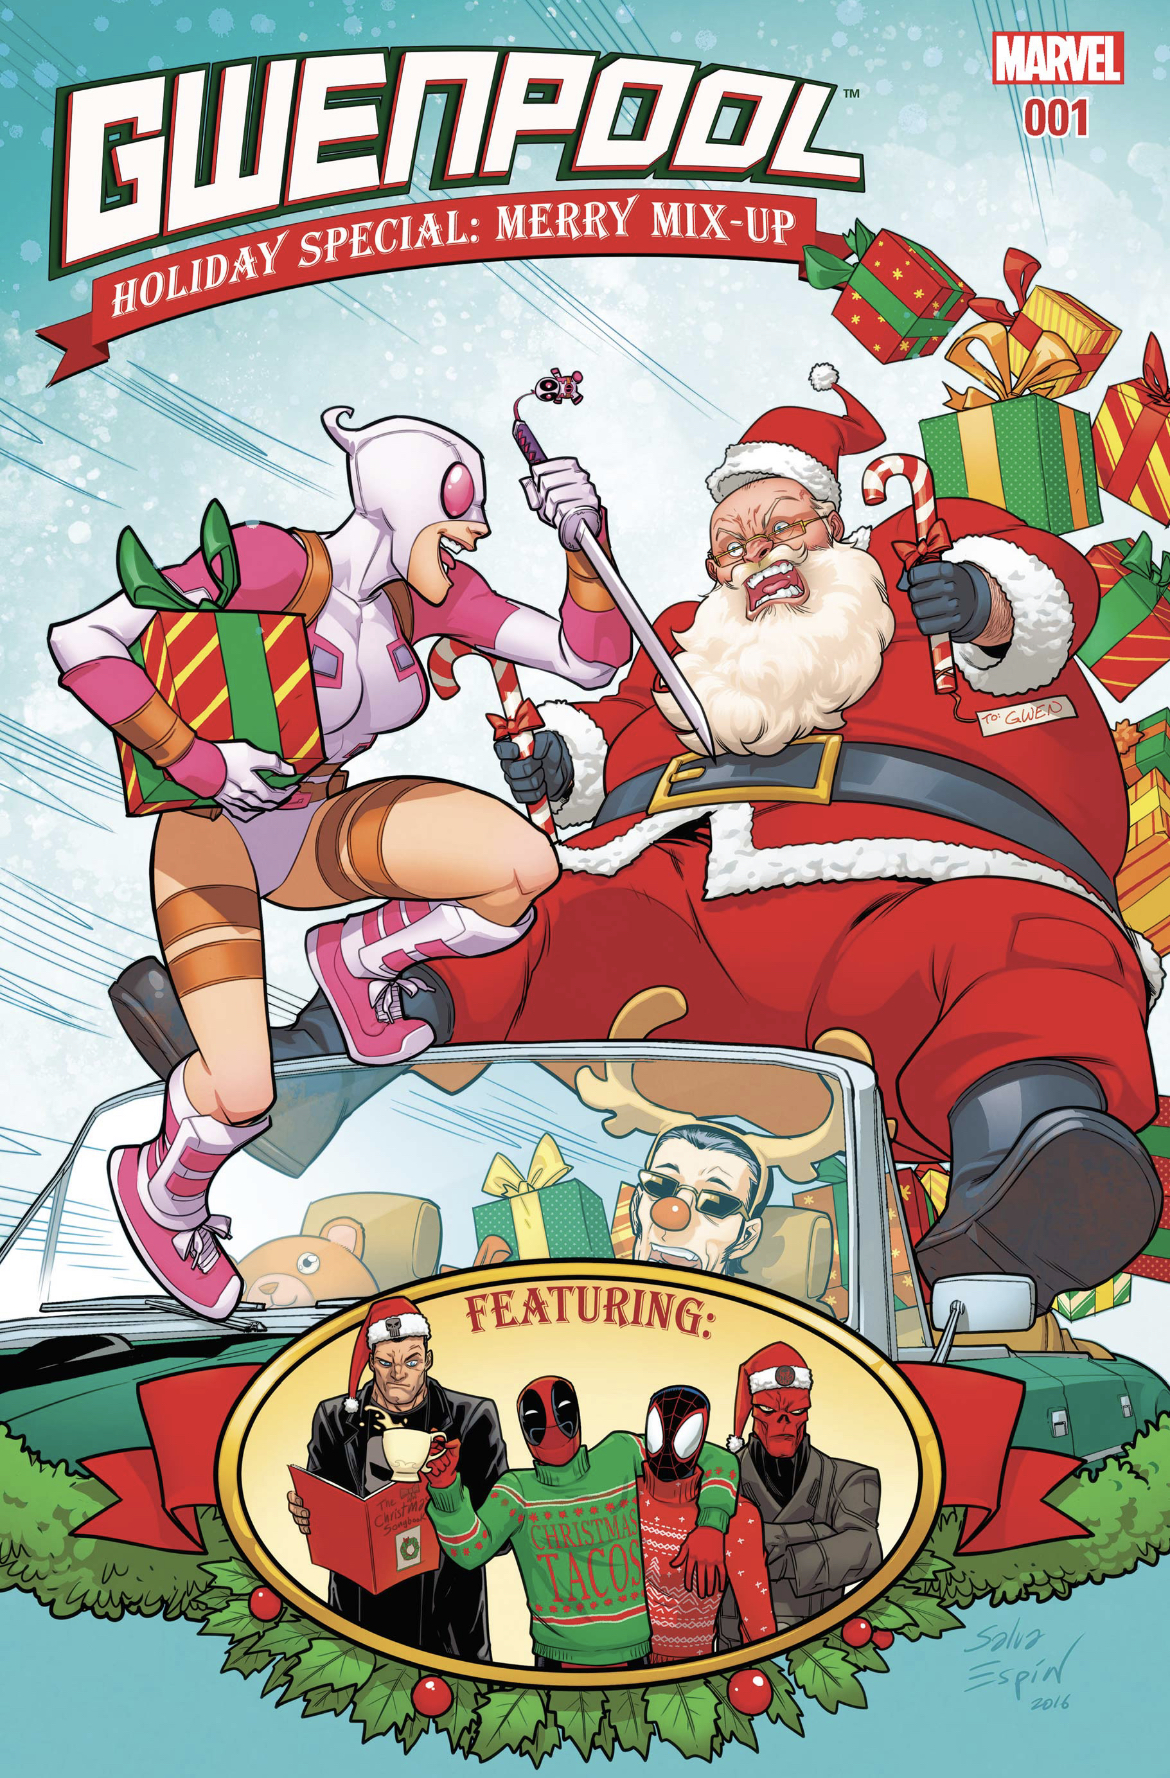 Gwenpool Holiday Special: Merry Mix-Up (2016)